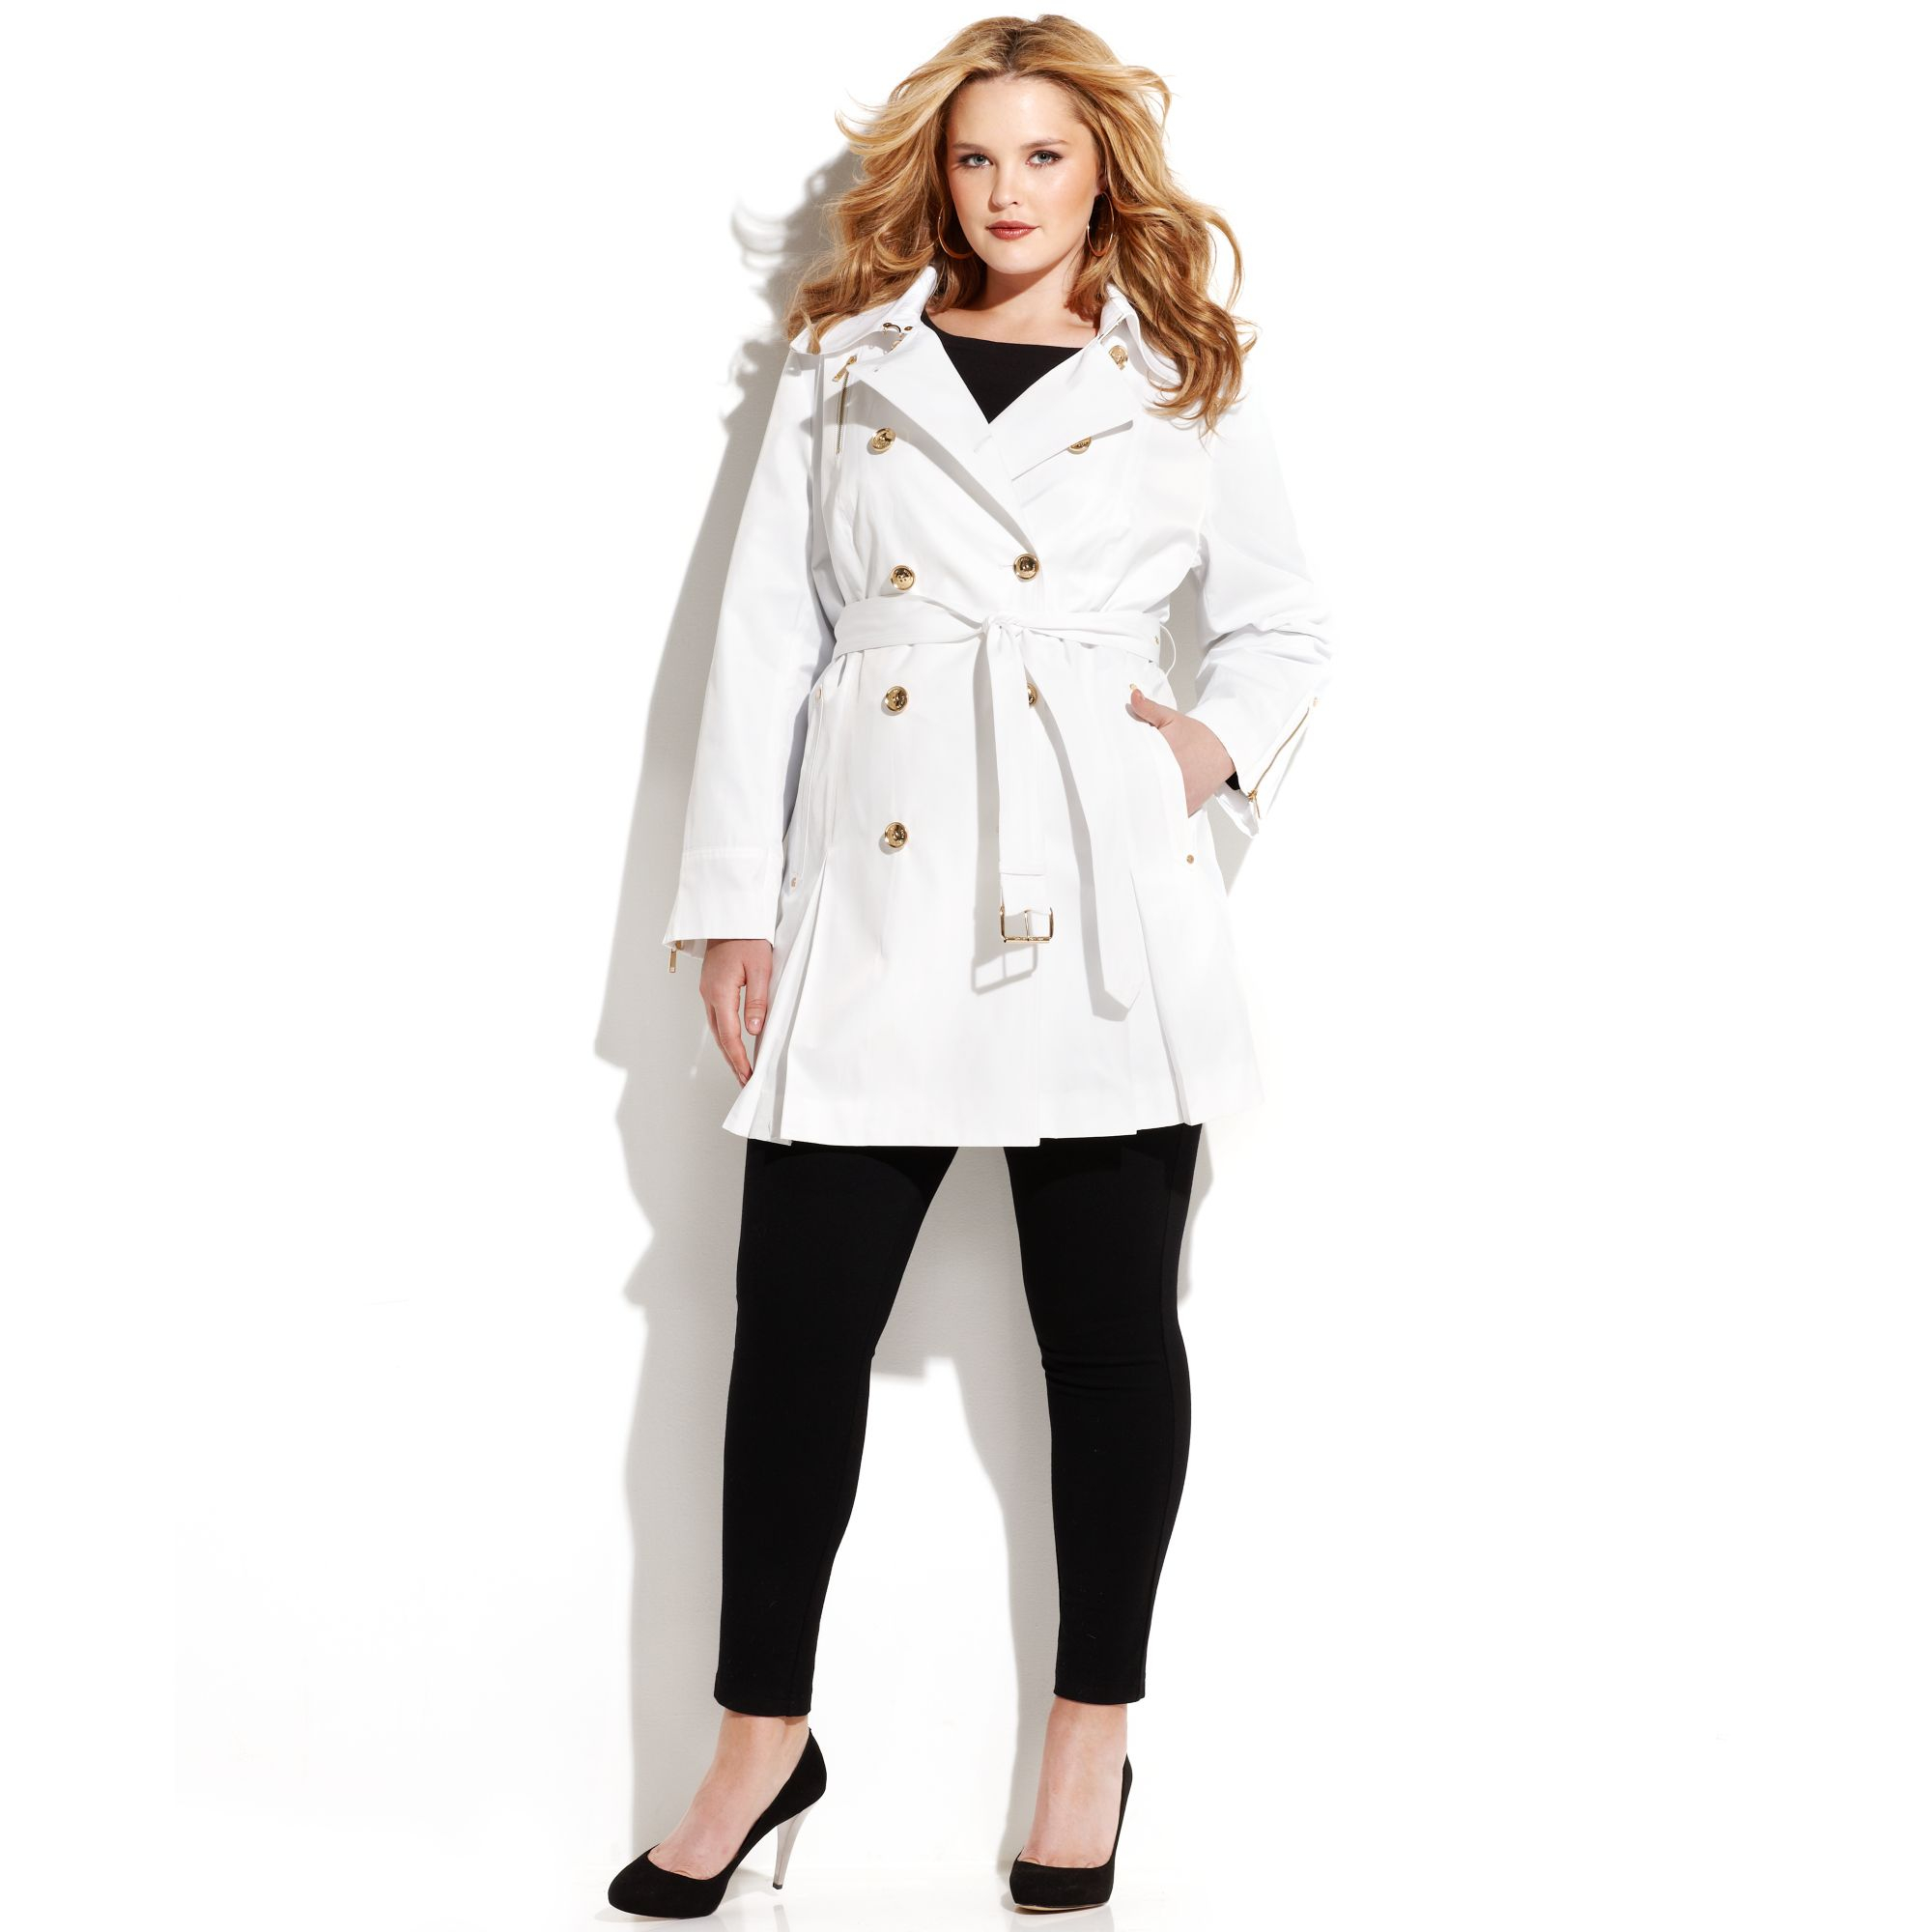 Usher in a new season of cool in designer coats and designer jackets. Plush touches, luxe textures, high shine and vivid color are the hautest way to take the cold weather by storm. From classic women's trench coats to studded women's leather jackets, you'll find smart outer layers for every adventure.